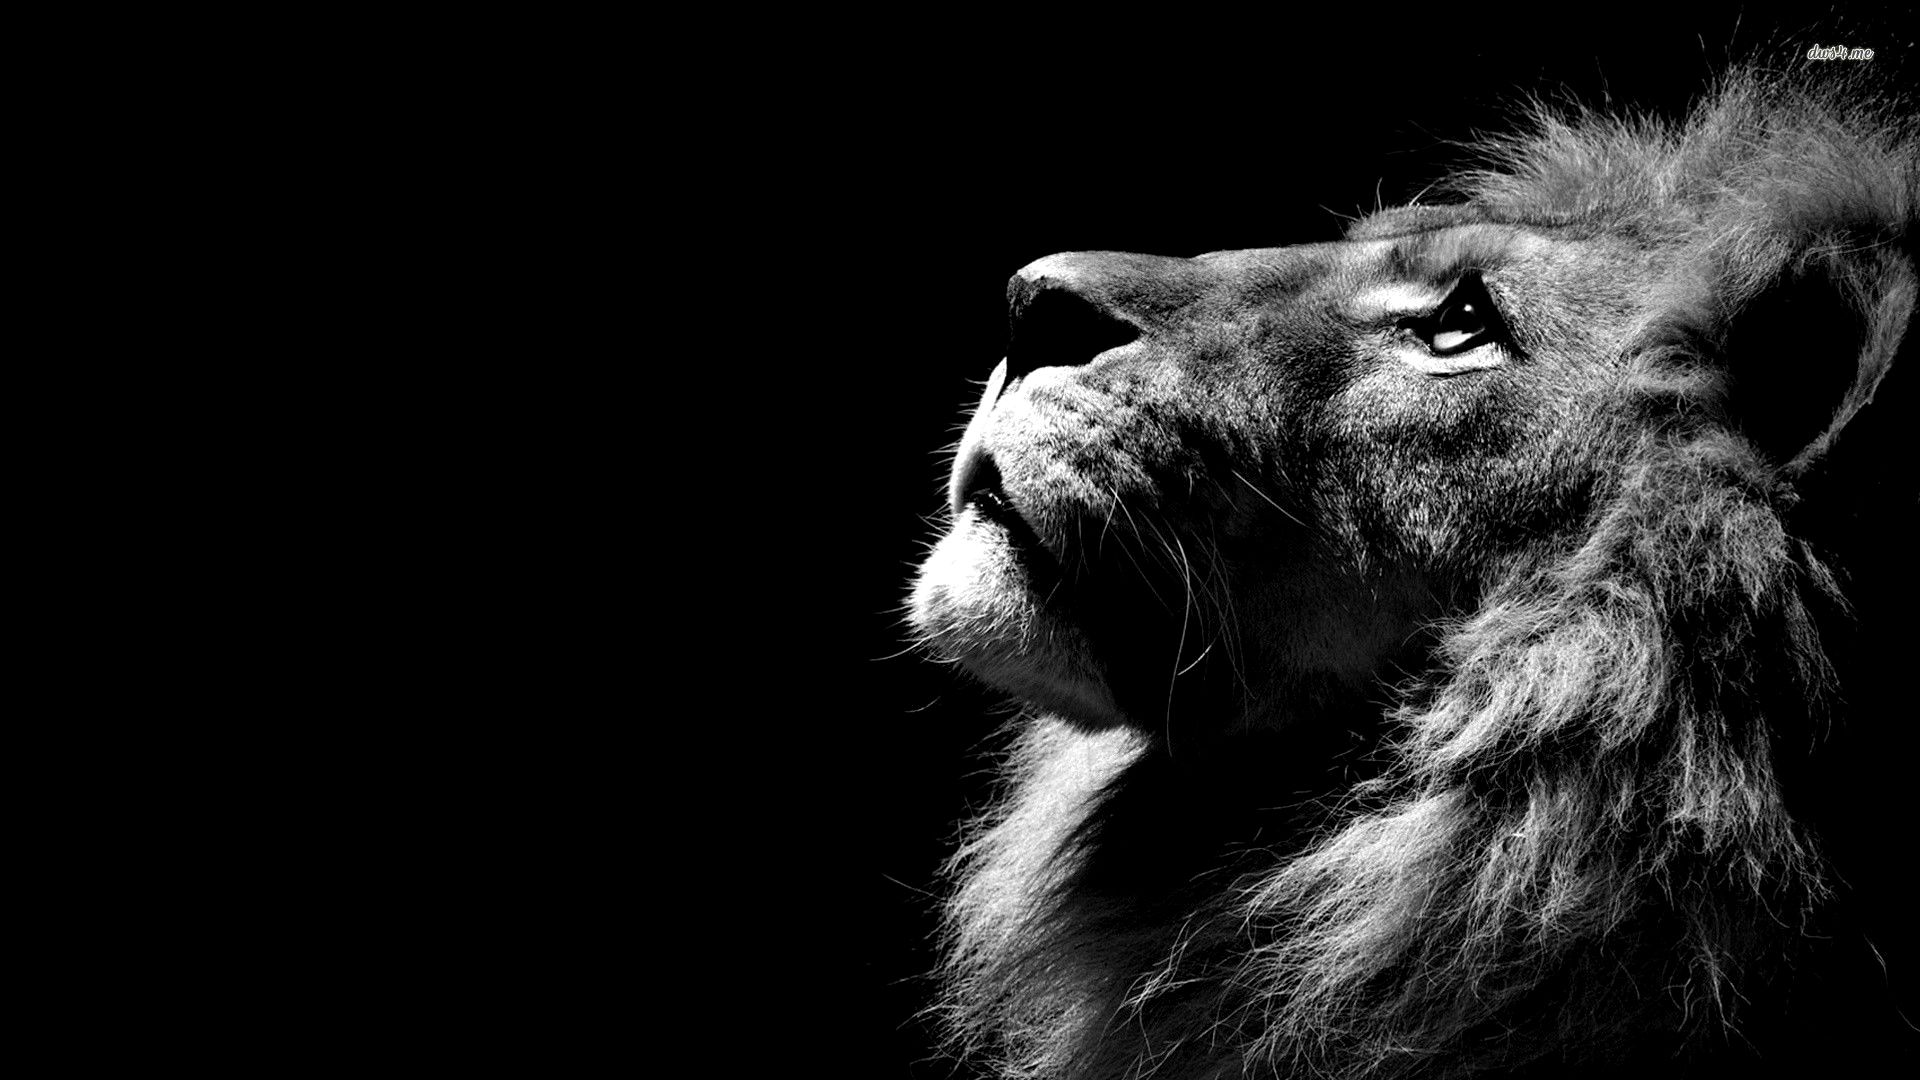 Dark Lion Wallpaper 4k Trick In 2020 Black And White Lion Animal Wallpaper Lion Wallpaper